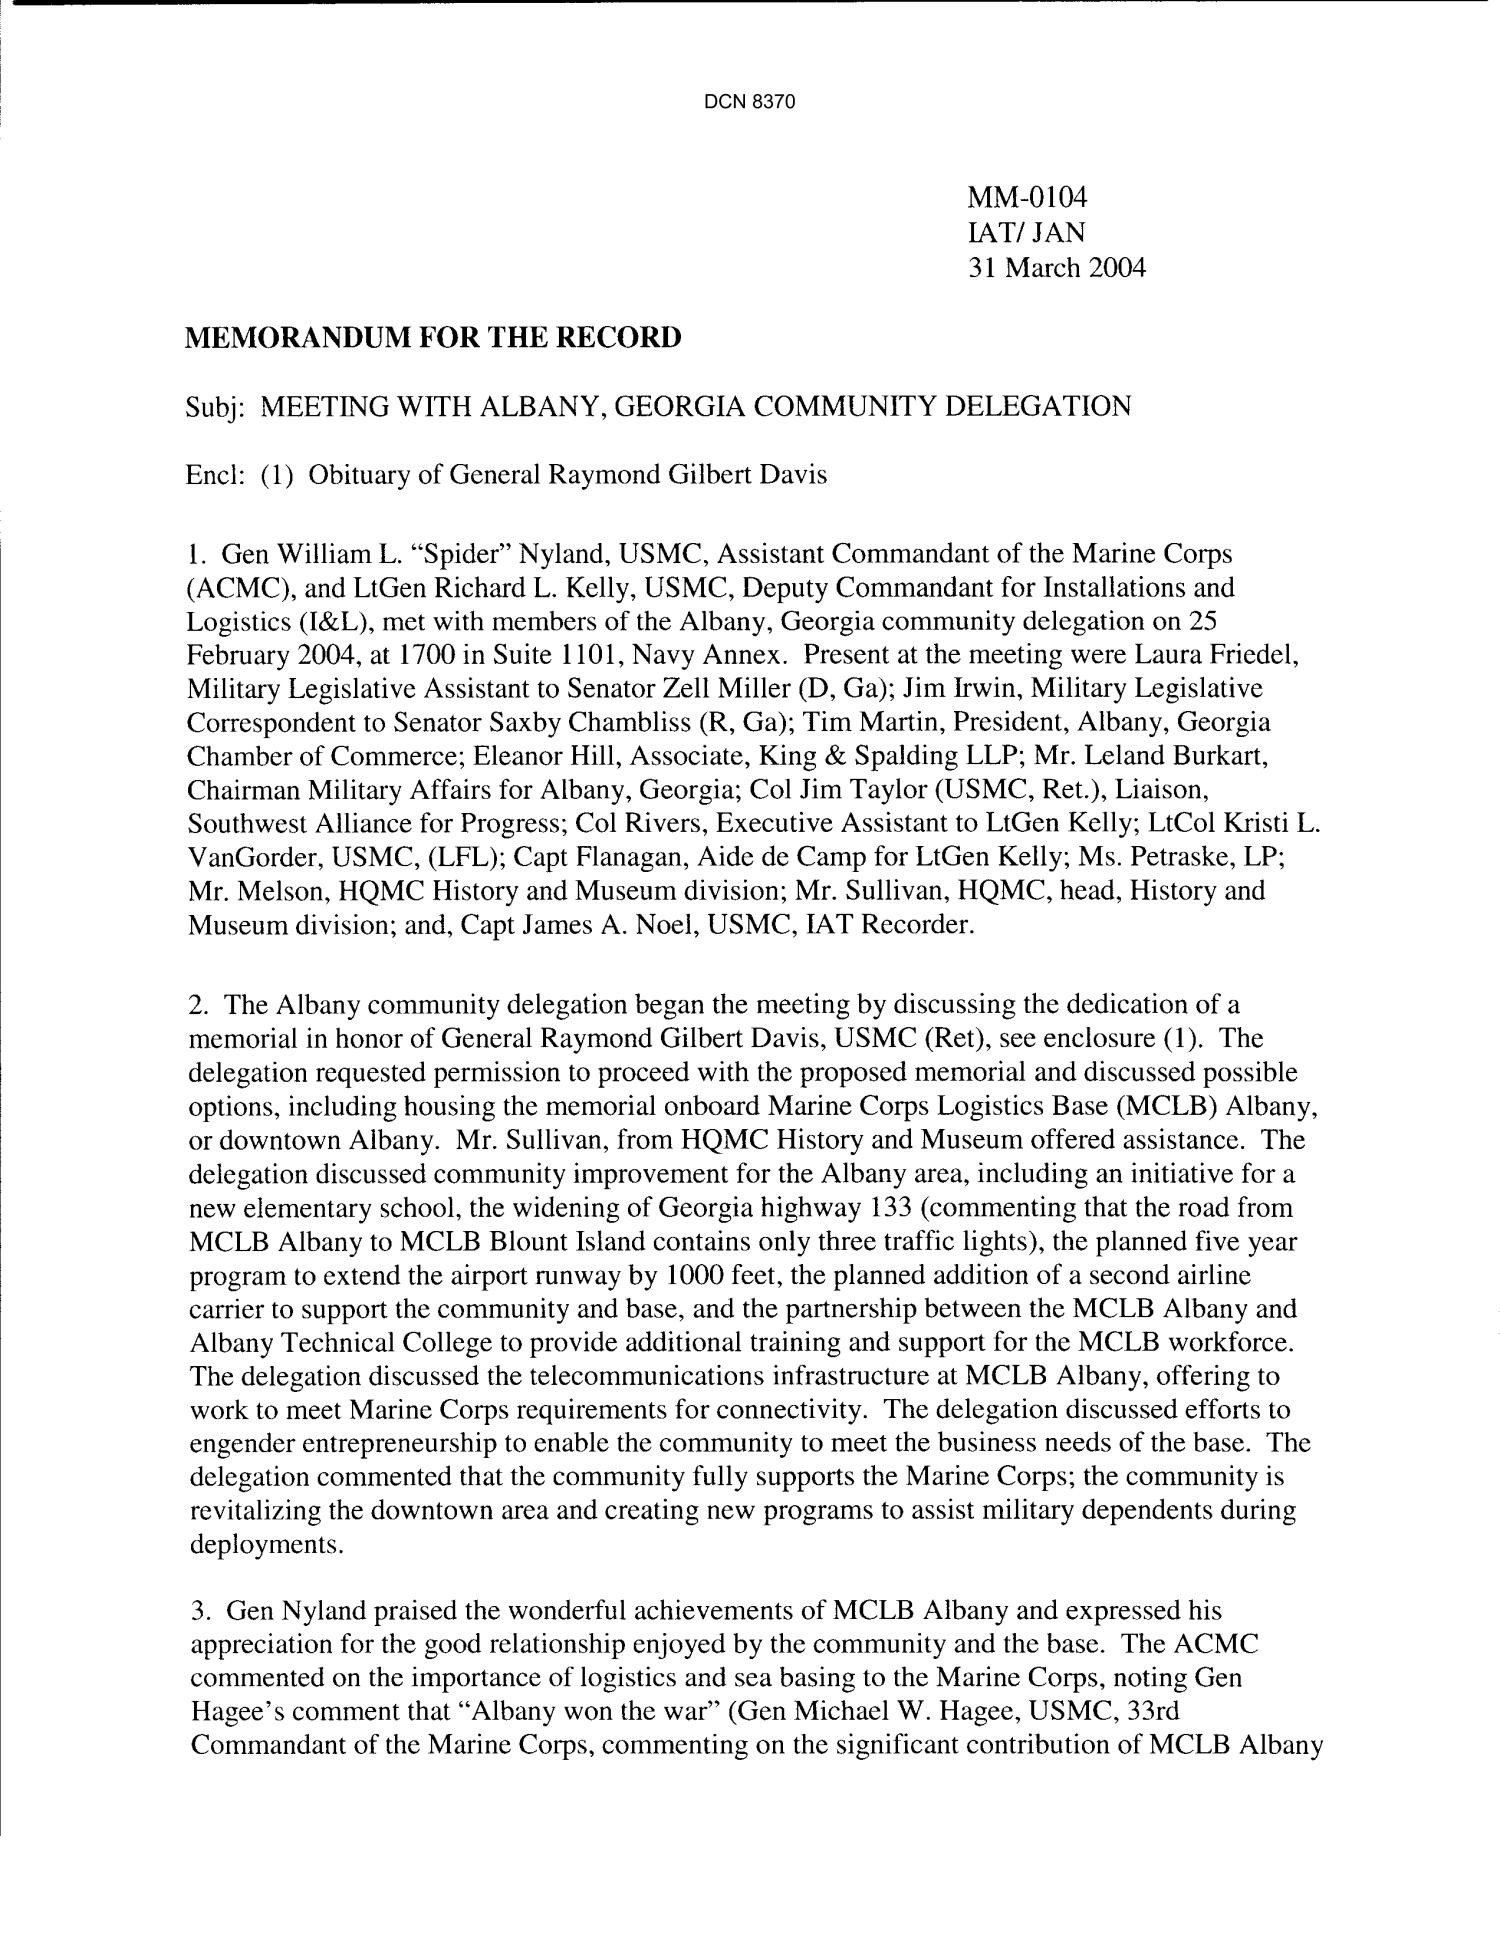 Memorandum for Record Template Department Of the Navy Memorandum for the Record